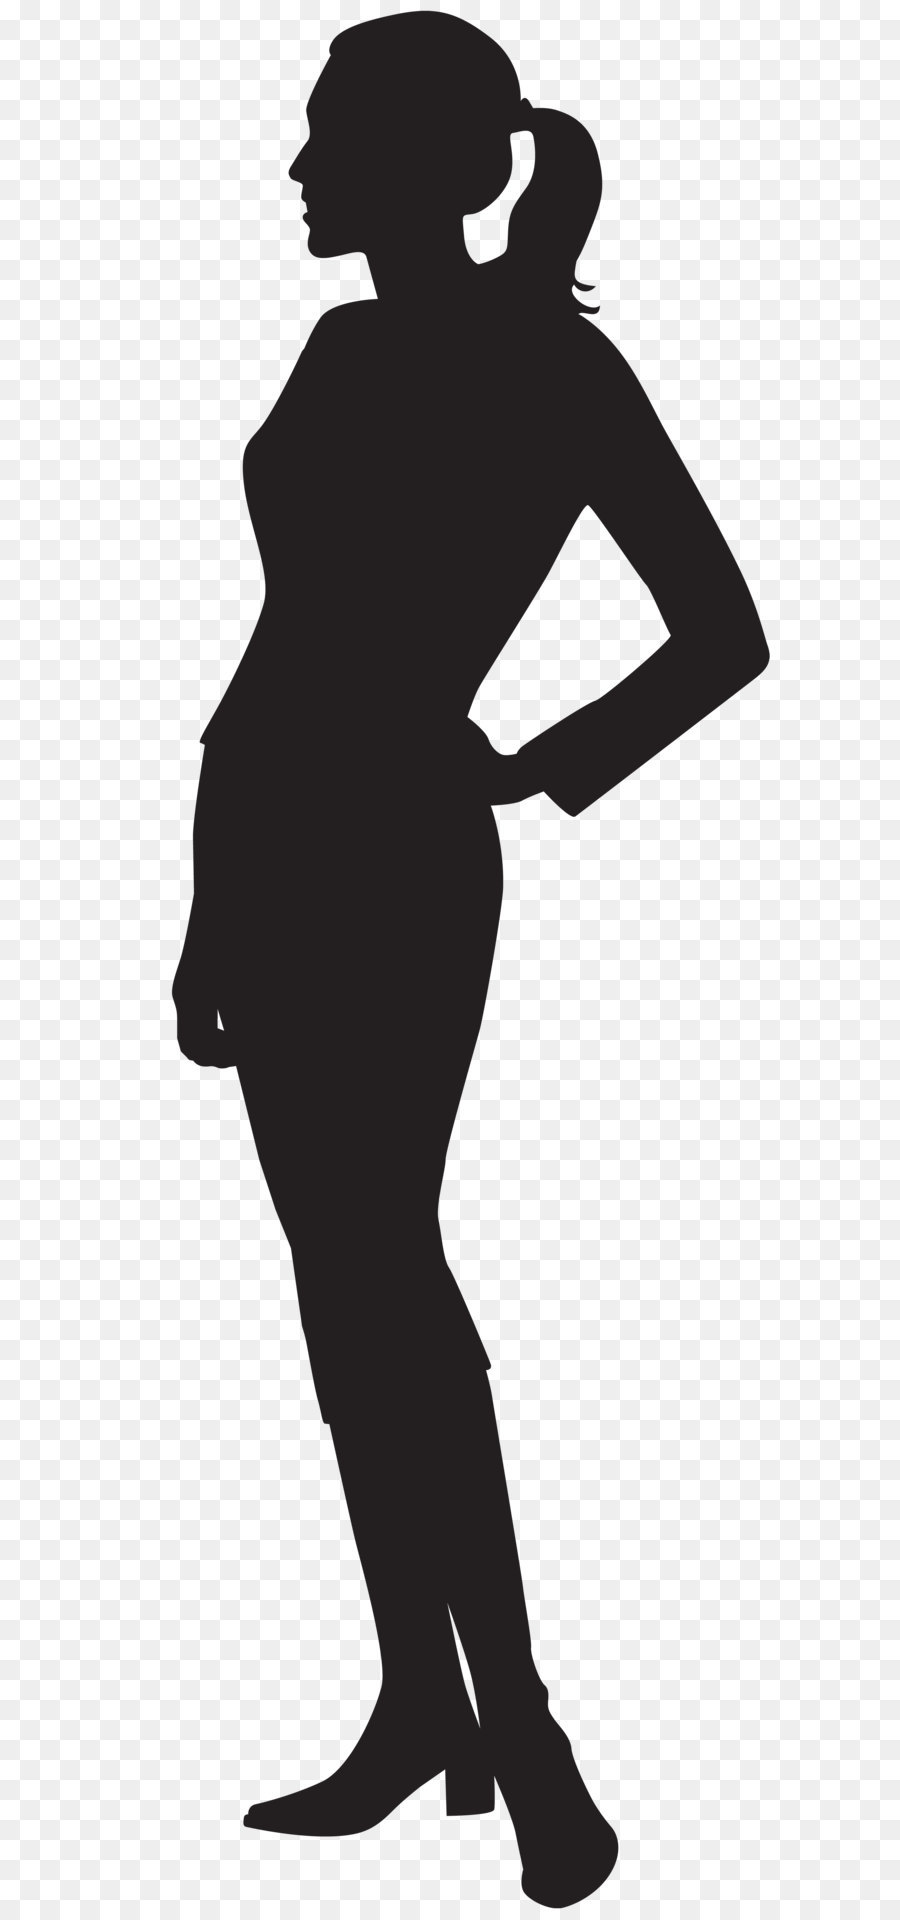 Female Silhouette Clip Art PNG Image